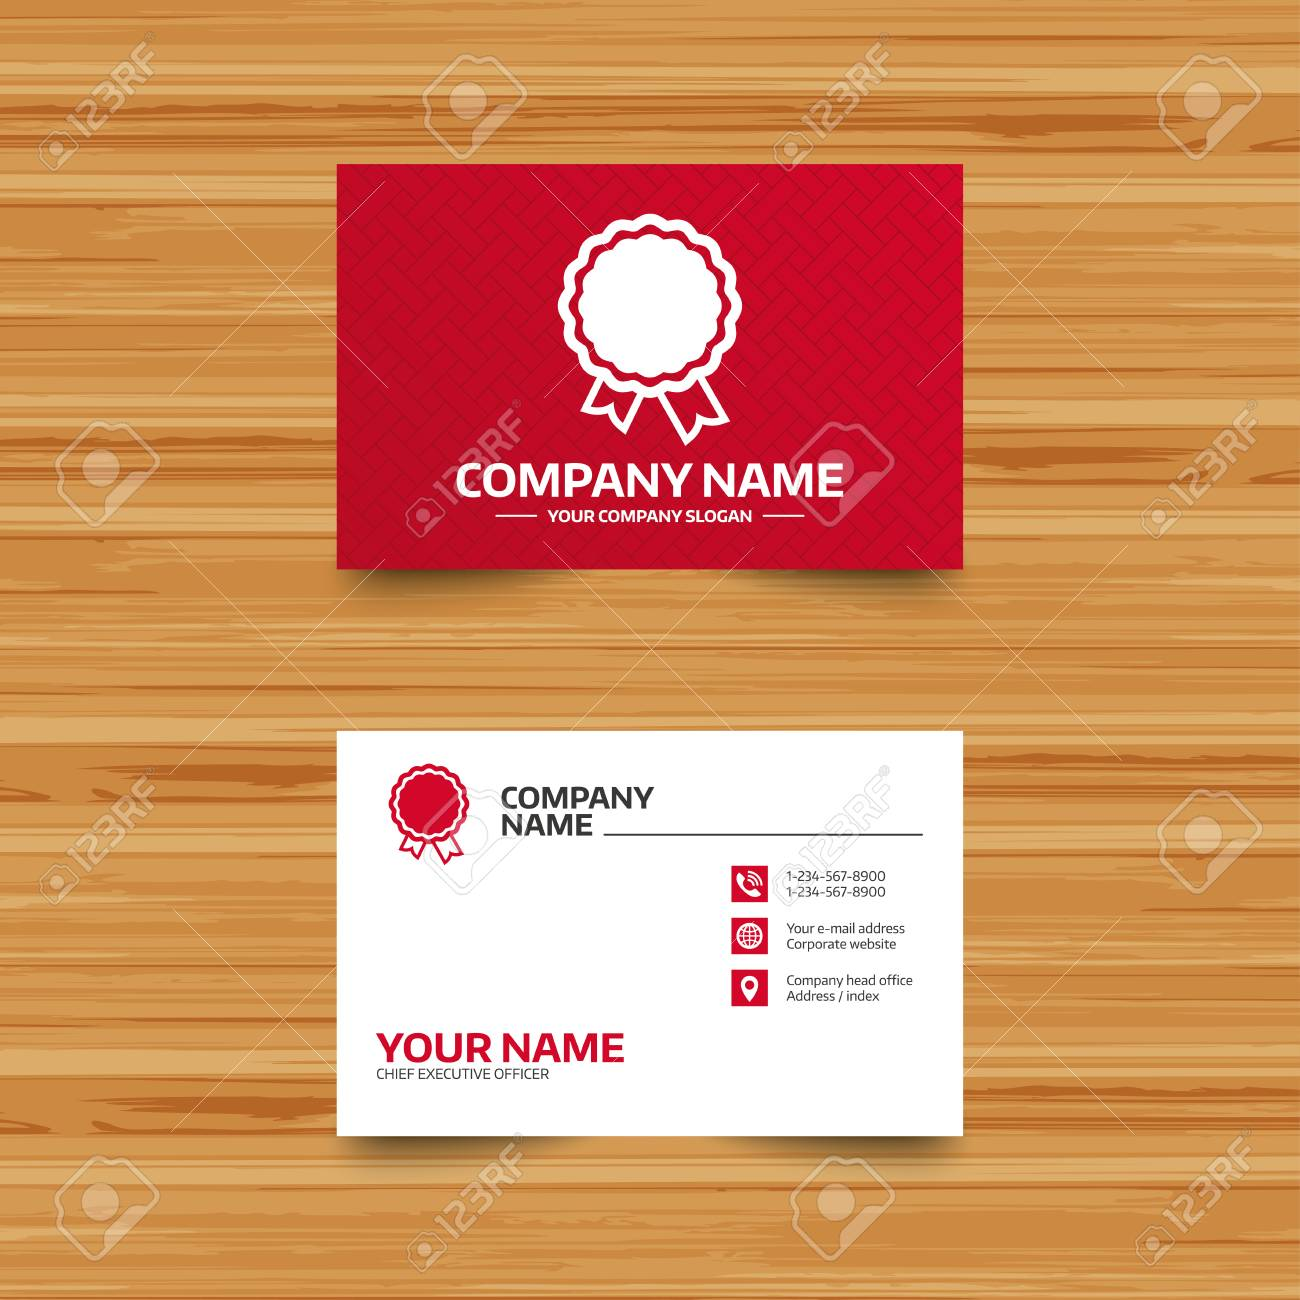 Business card template award icon best guarantee symbol winner business card template award icon best guarantee symbol winner achievement sign phone accmission Choice Image